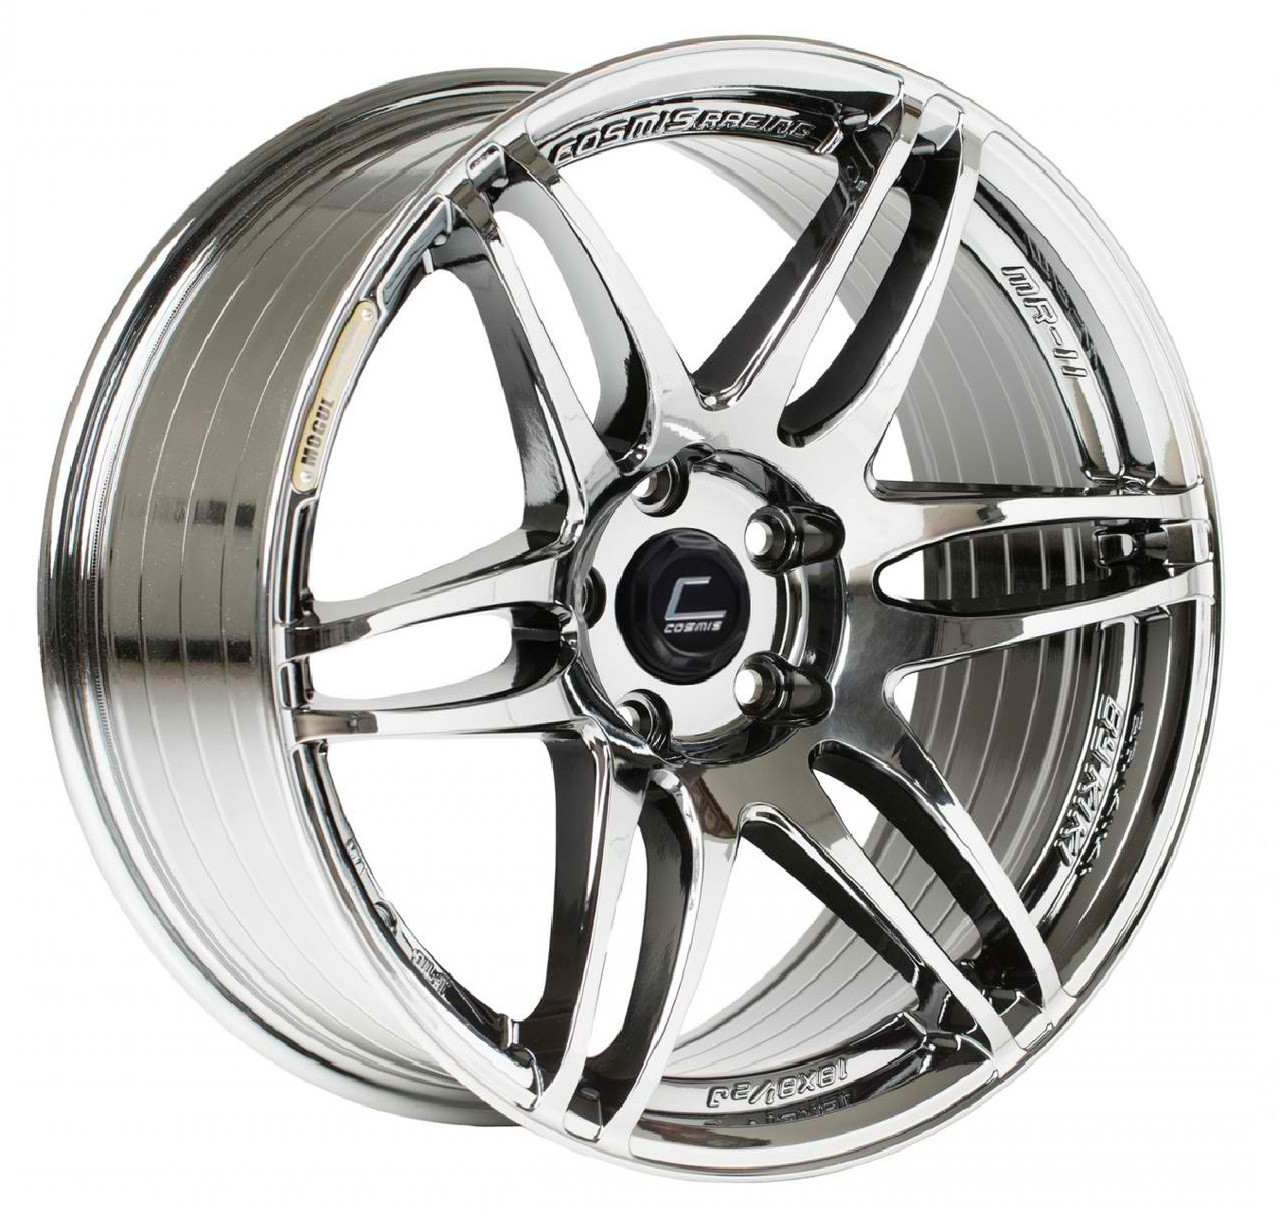 Cosmis Racing MRII Wheel - Black Chrome